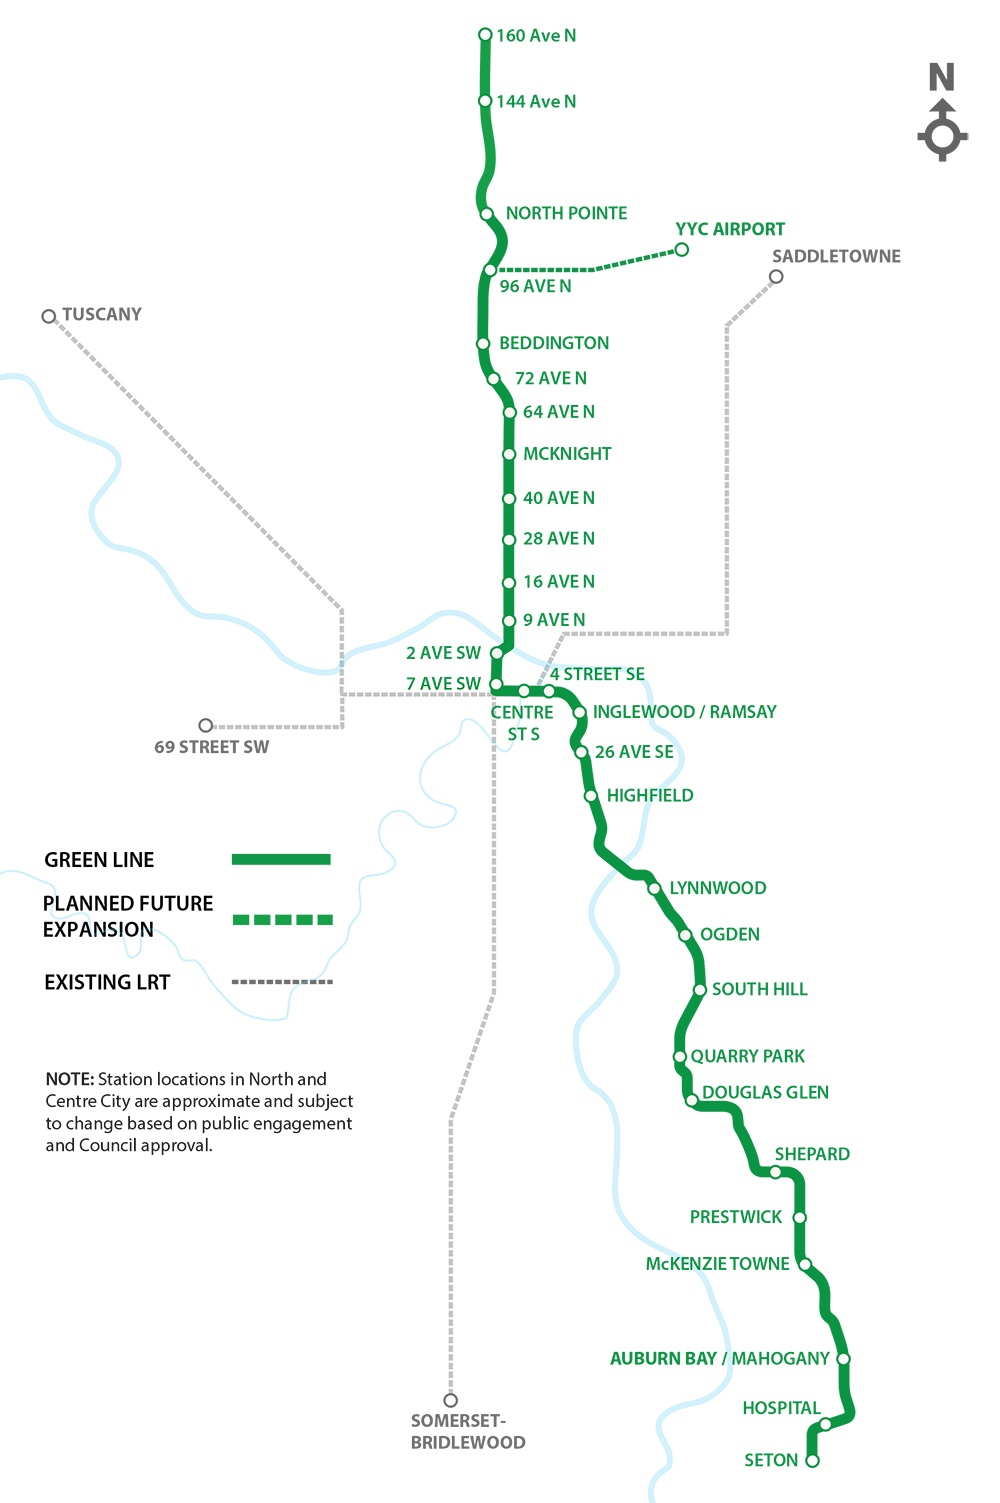 This image shows a map of the Green Line LRT route